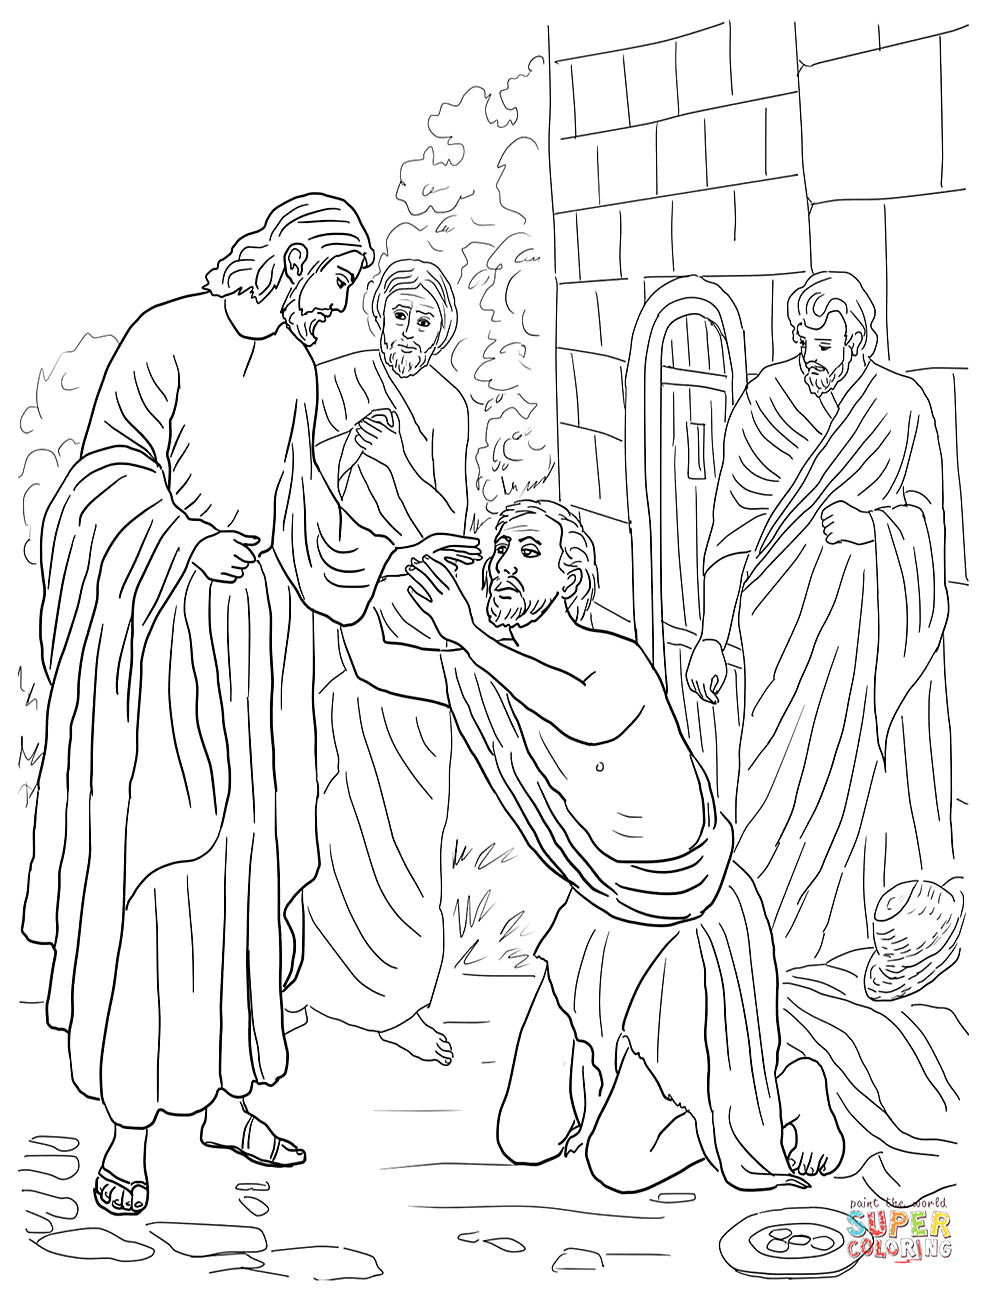 Free Christian Coloring Pages For Kids, Children, And Adults